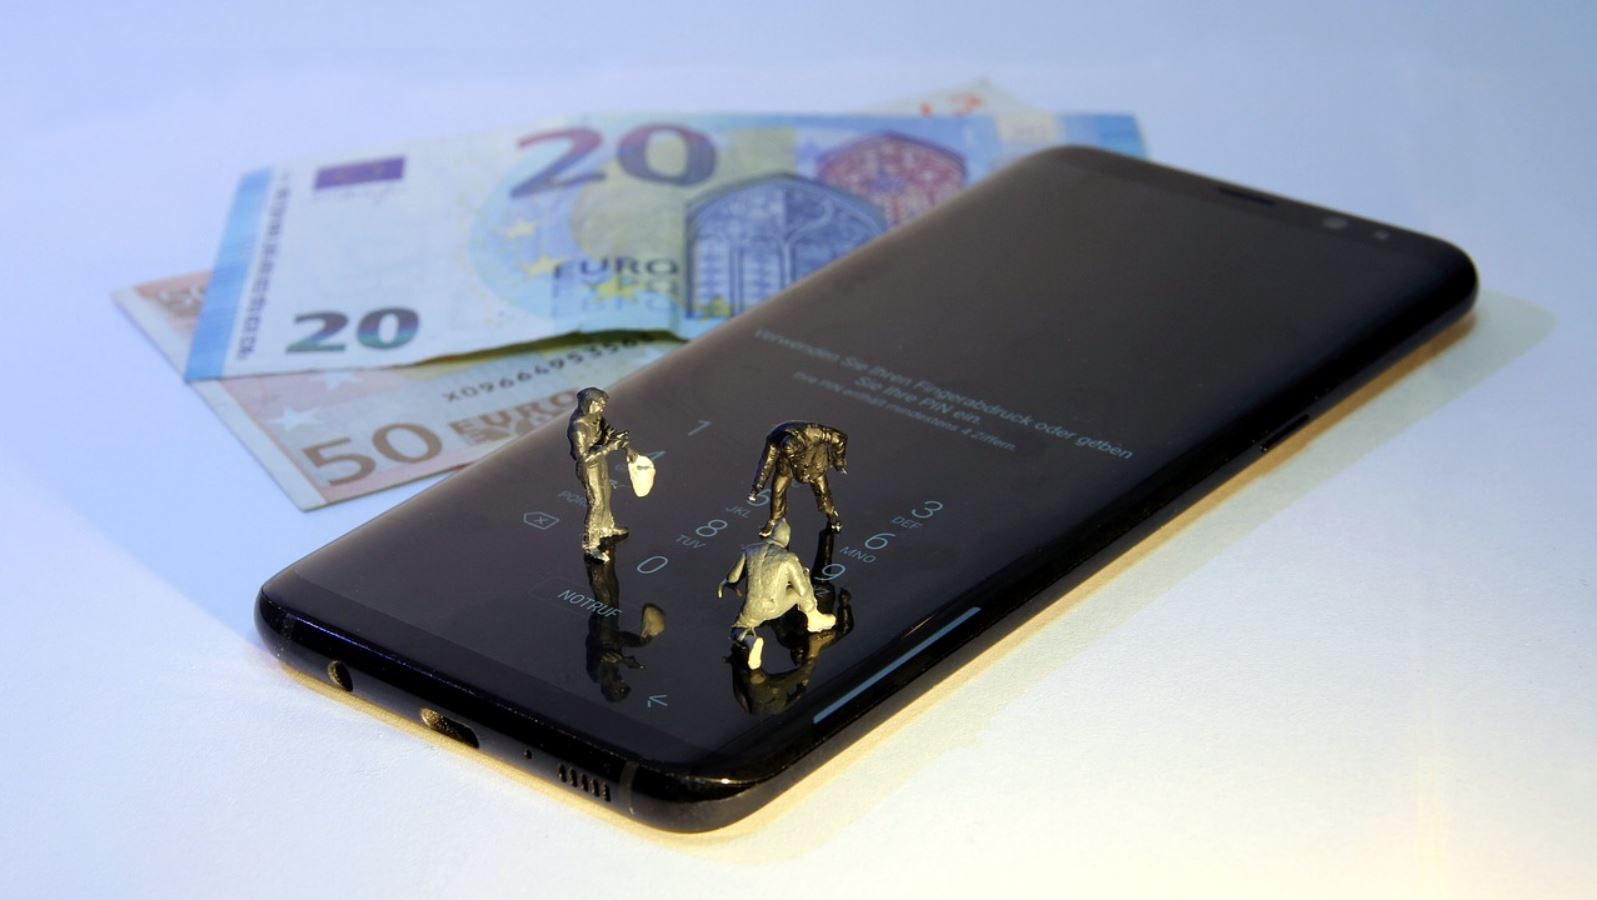 protect phone from hackers attack